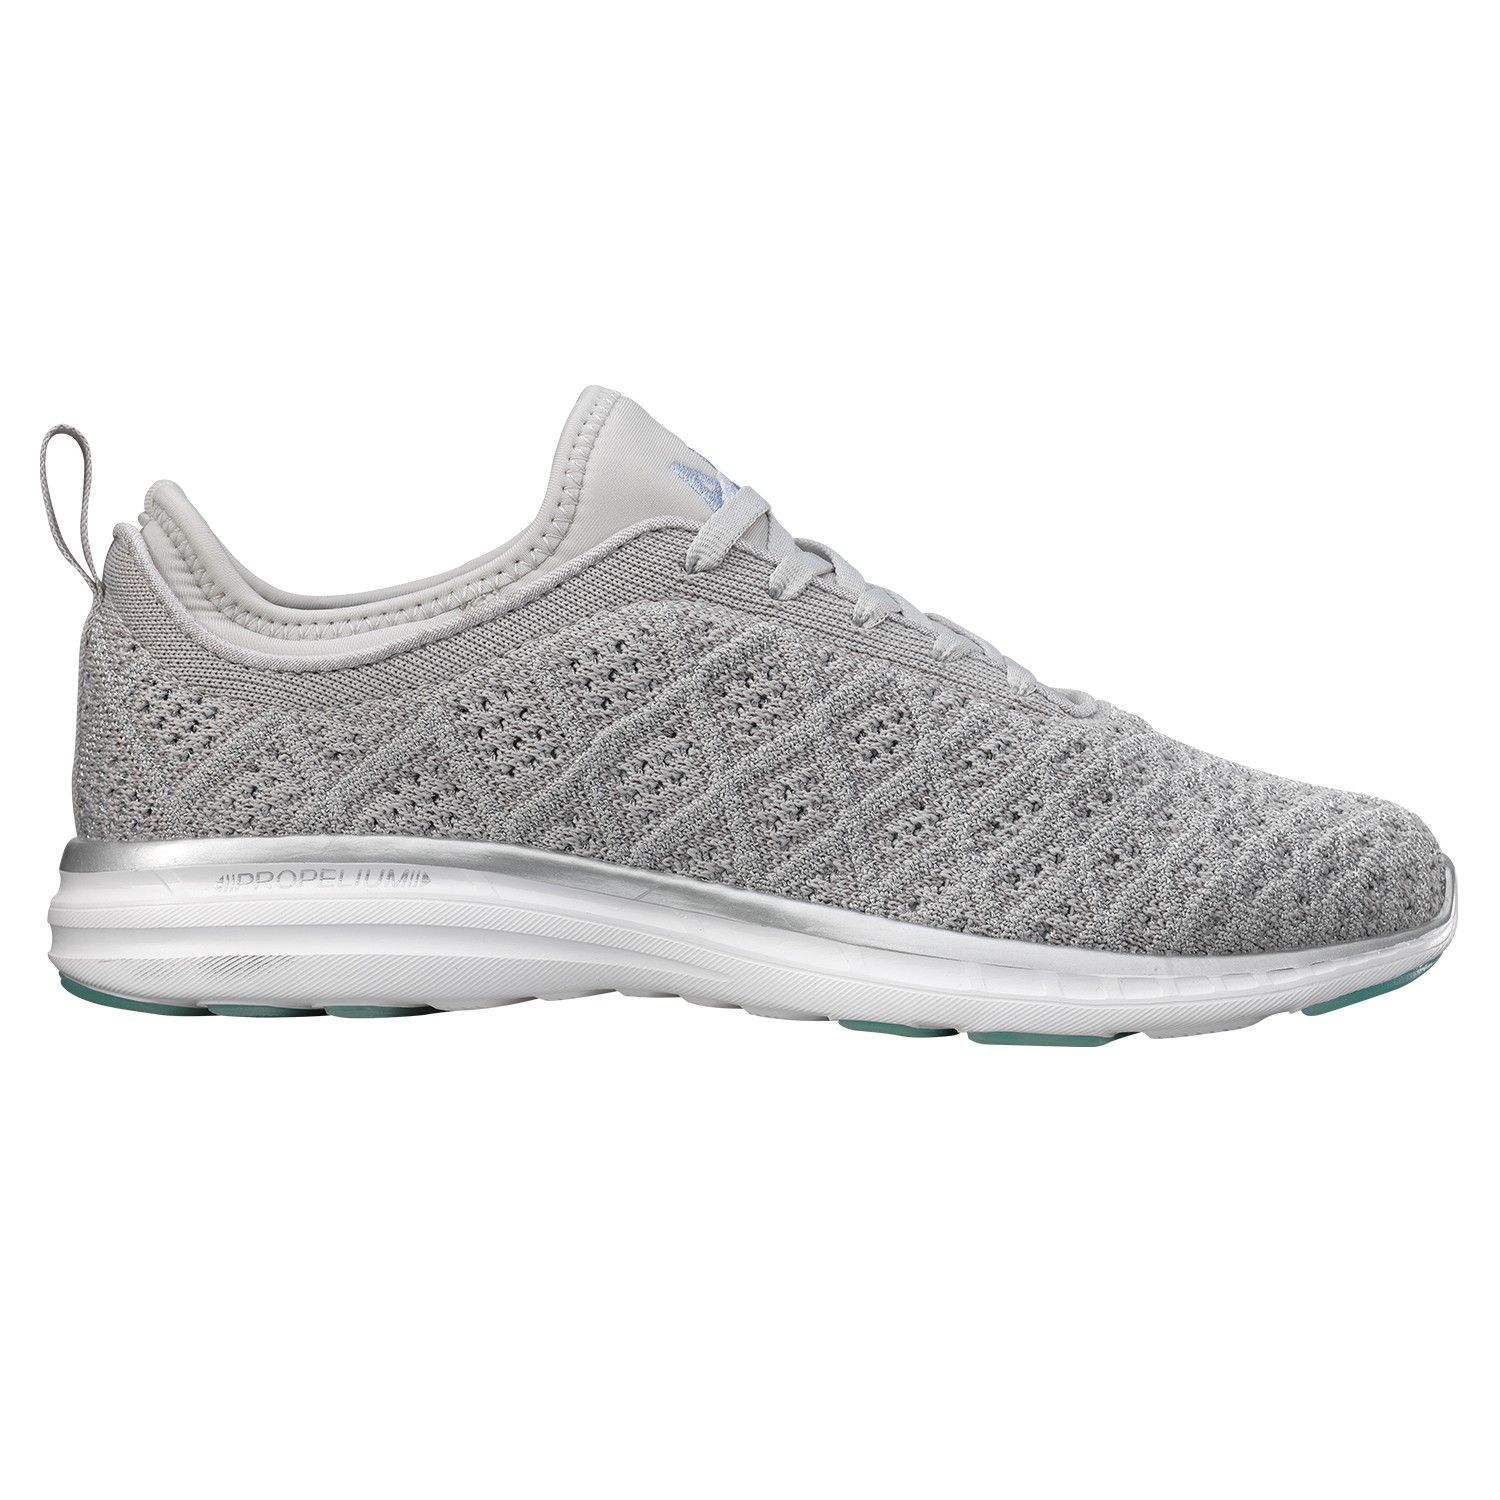 top quality sale online APL Running Low-Top Sneakers clearance low price clearance eastbay choice collections cheap online dzWDKFH5